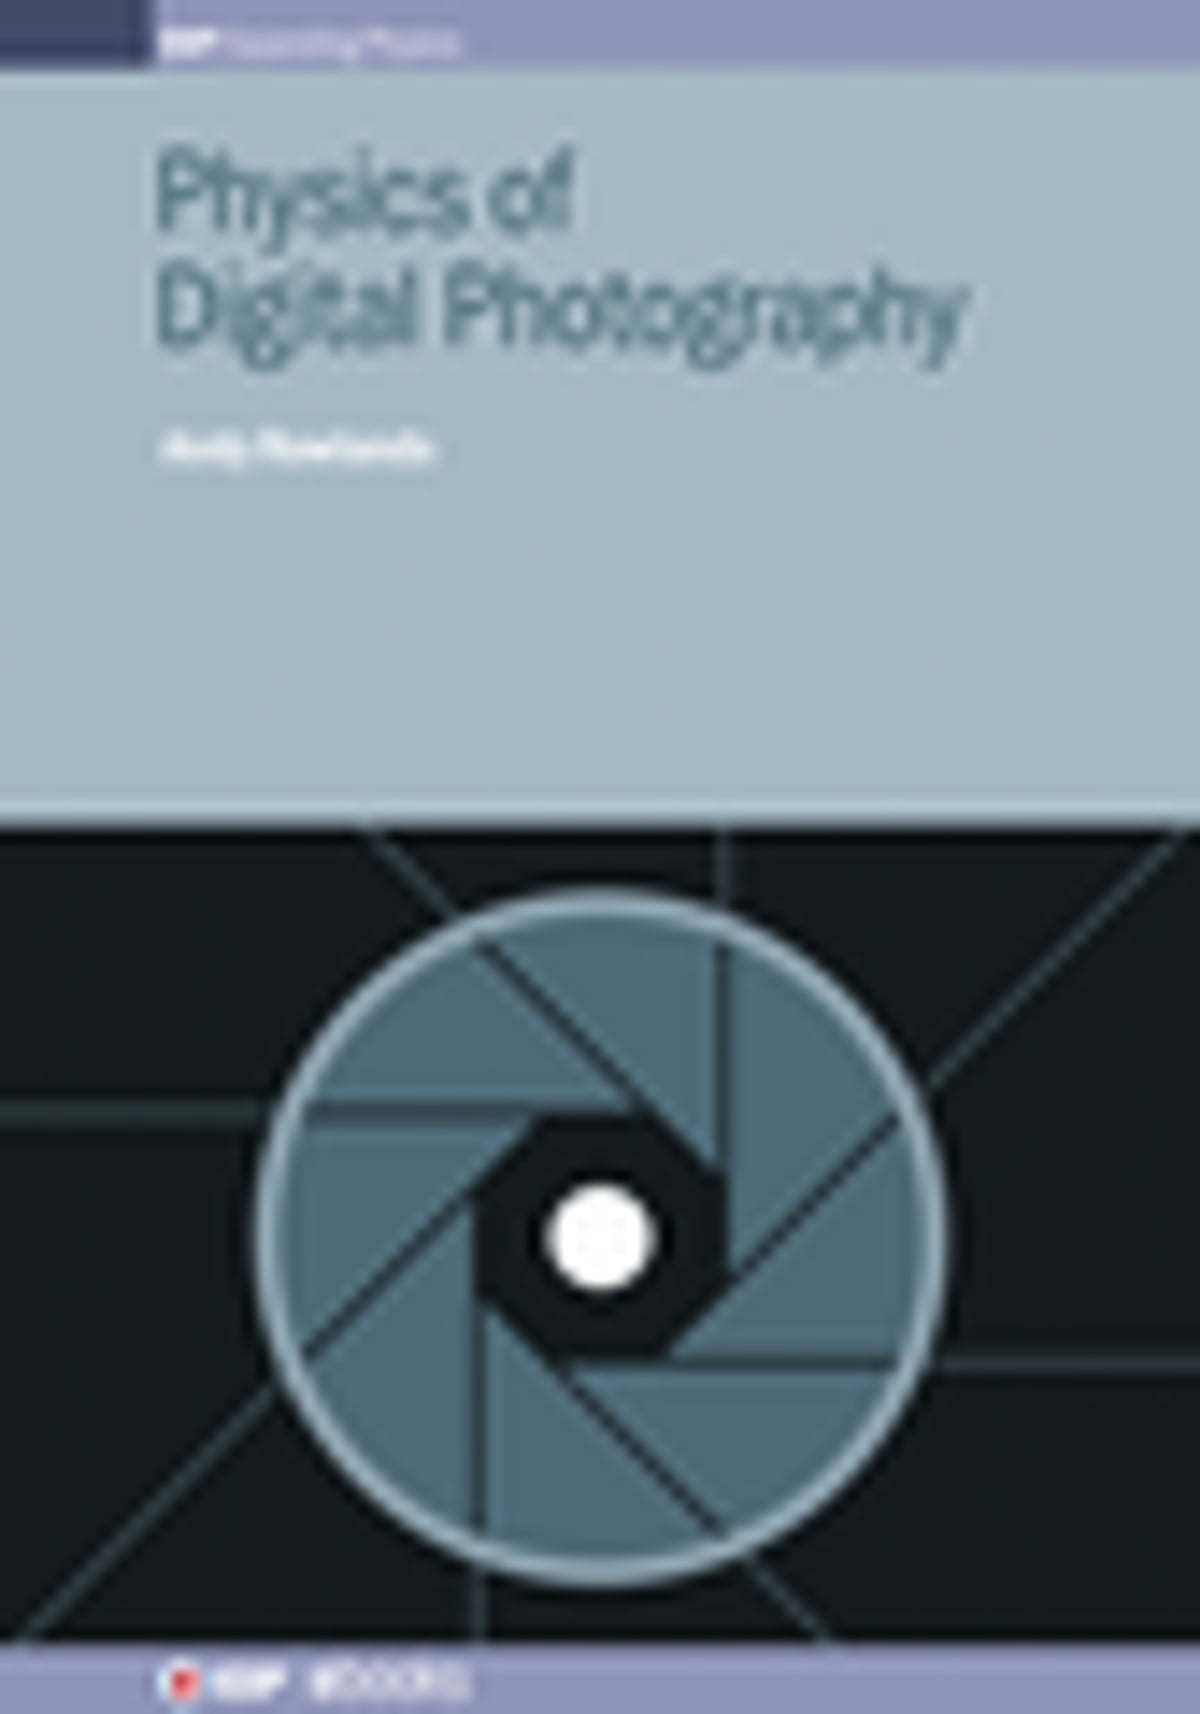 Physics of digital photography ebook by dr andy rowlands physics of digital photography ebook by dr andy rowlands 9780750312424 rakuten kobo fandeluxe Gallery